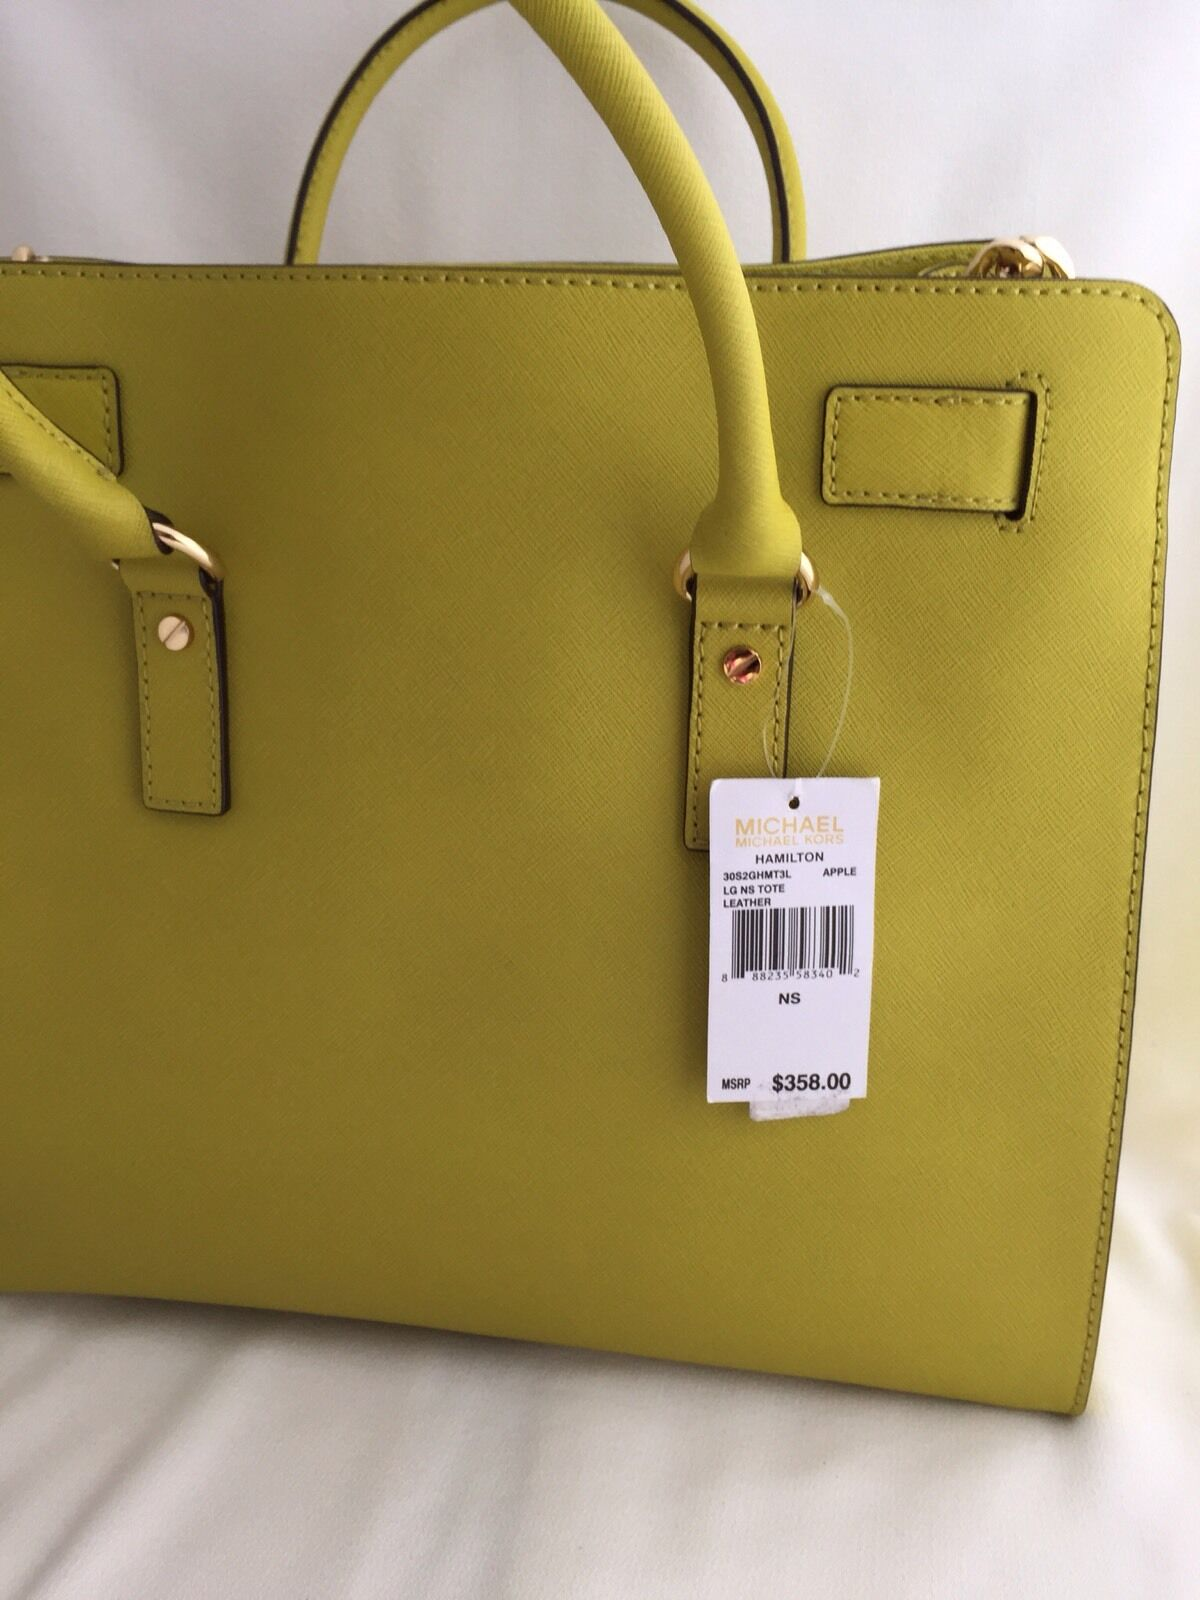 eedb680255ccae Michael Kors Hamilton Large North South Tote Apple Green Leather Purse for  sale online | eBay